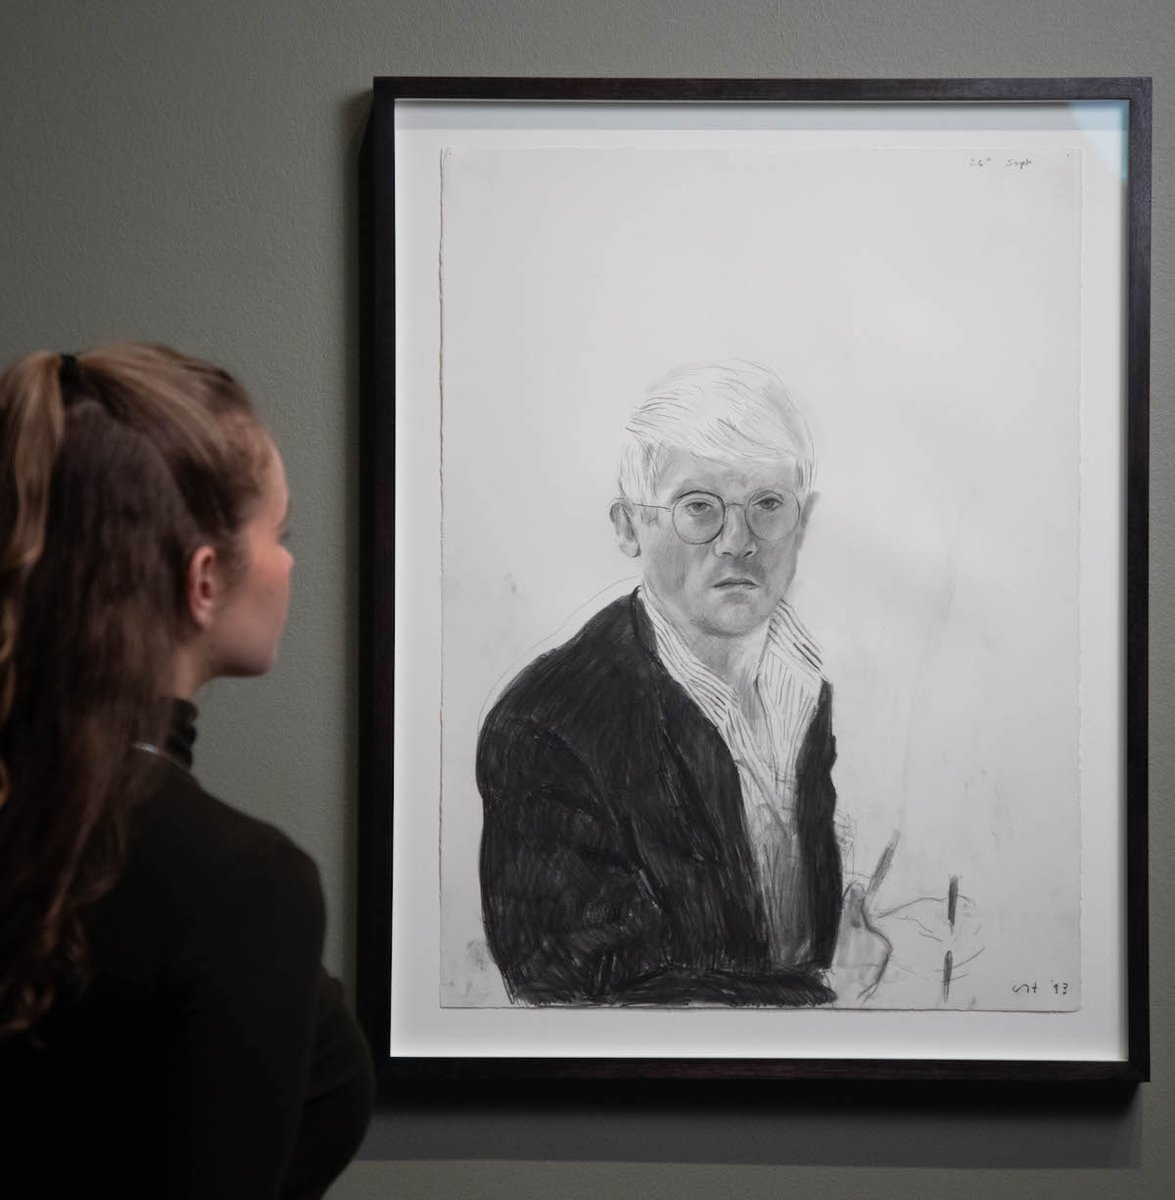 Create a self-portrait using different materials and share your drawings with @NPGLondon  using #HockneyDrawings.   You might be in with a chance of getting featured on their channels. #IsolationInspiration https://t.co/6c38A0Pe2M